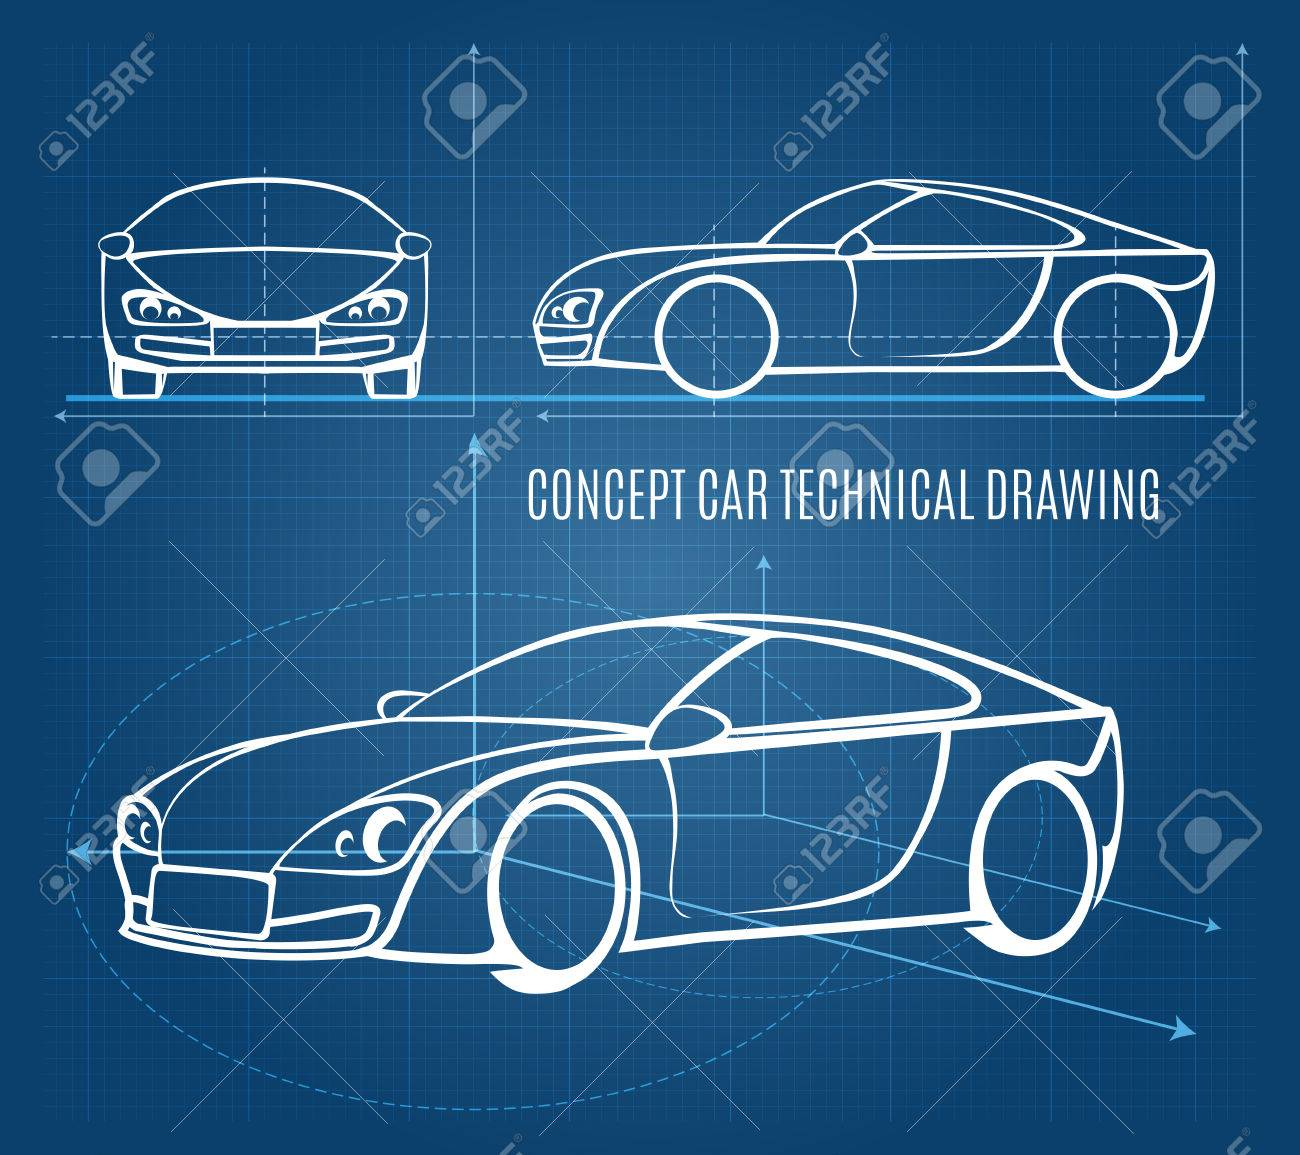 Concept Car Technical Drawing Royalty Free Cliparts, Vectors, And ...